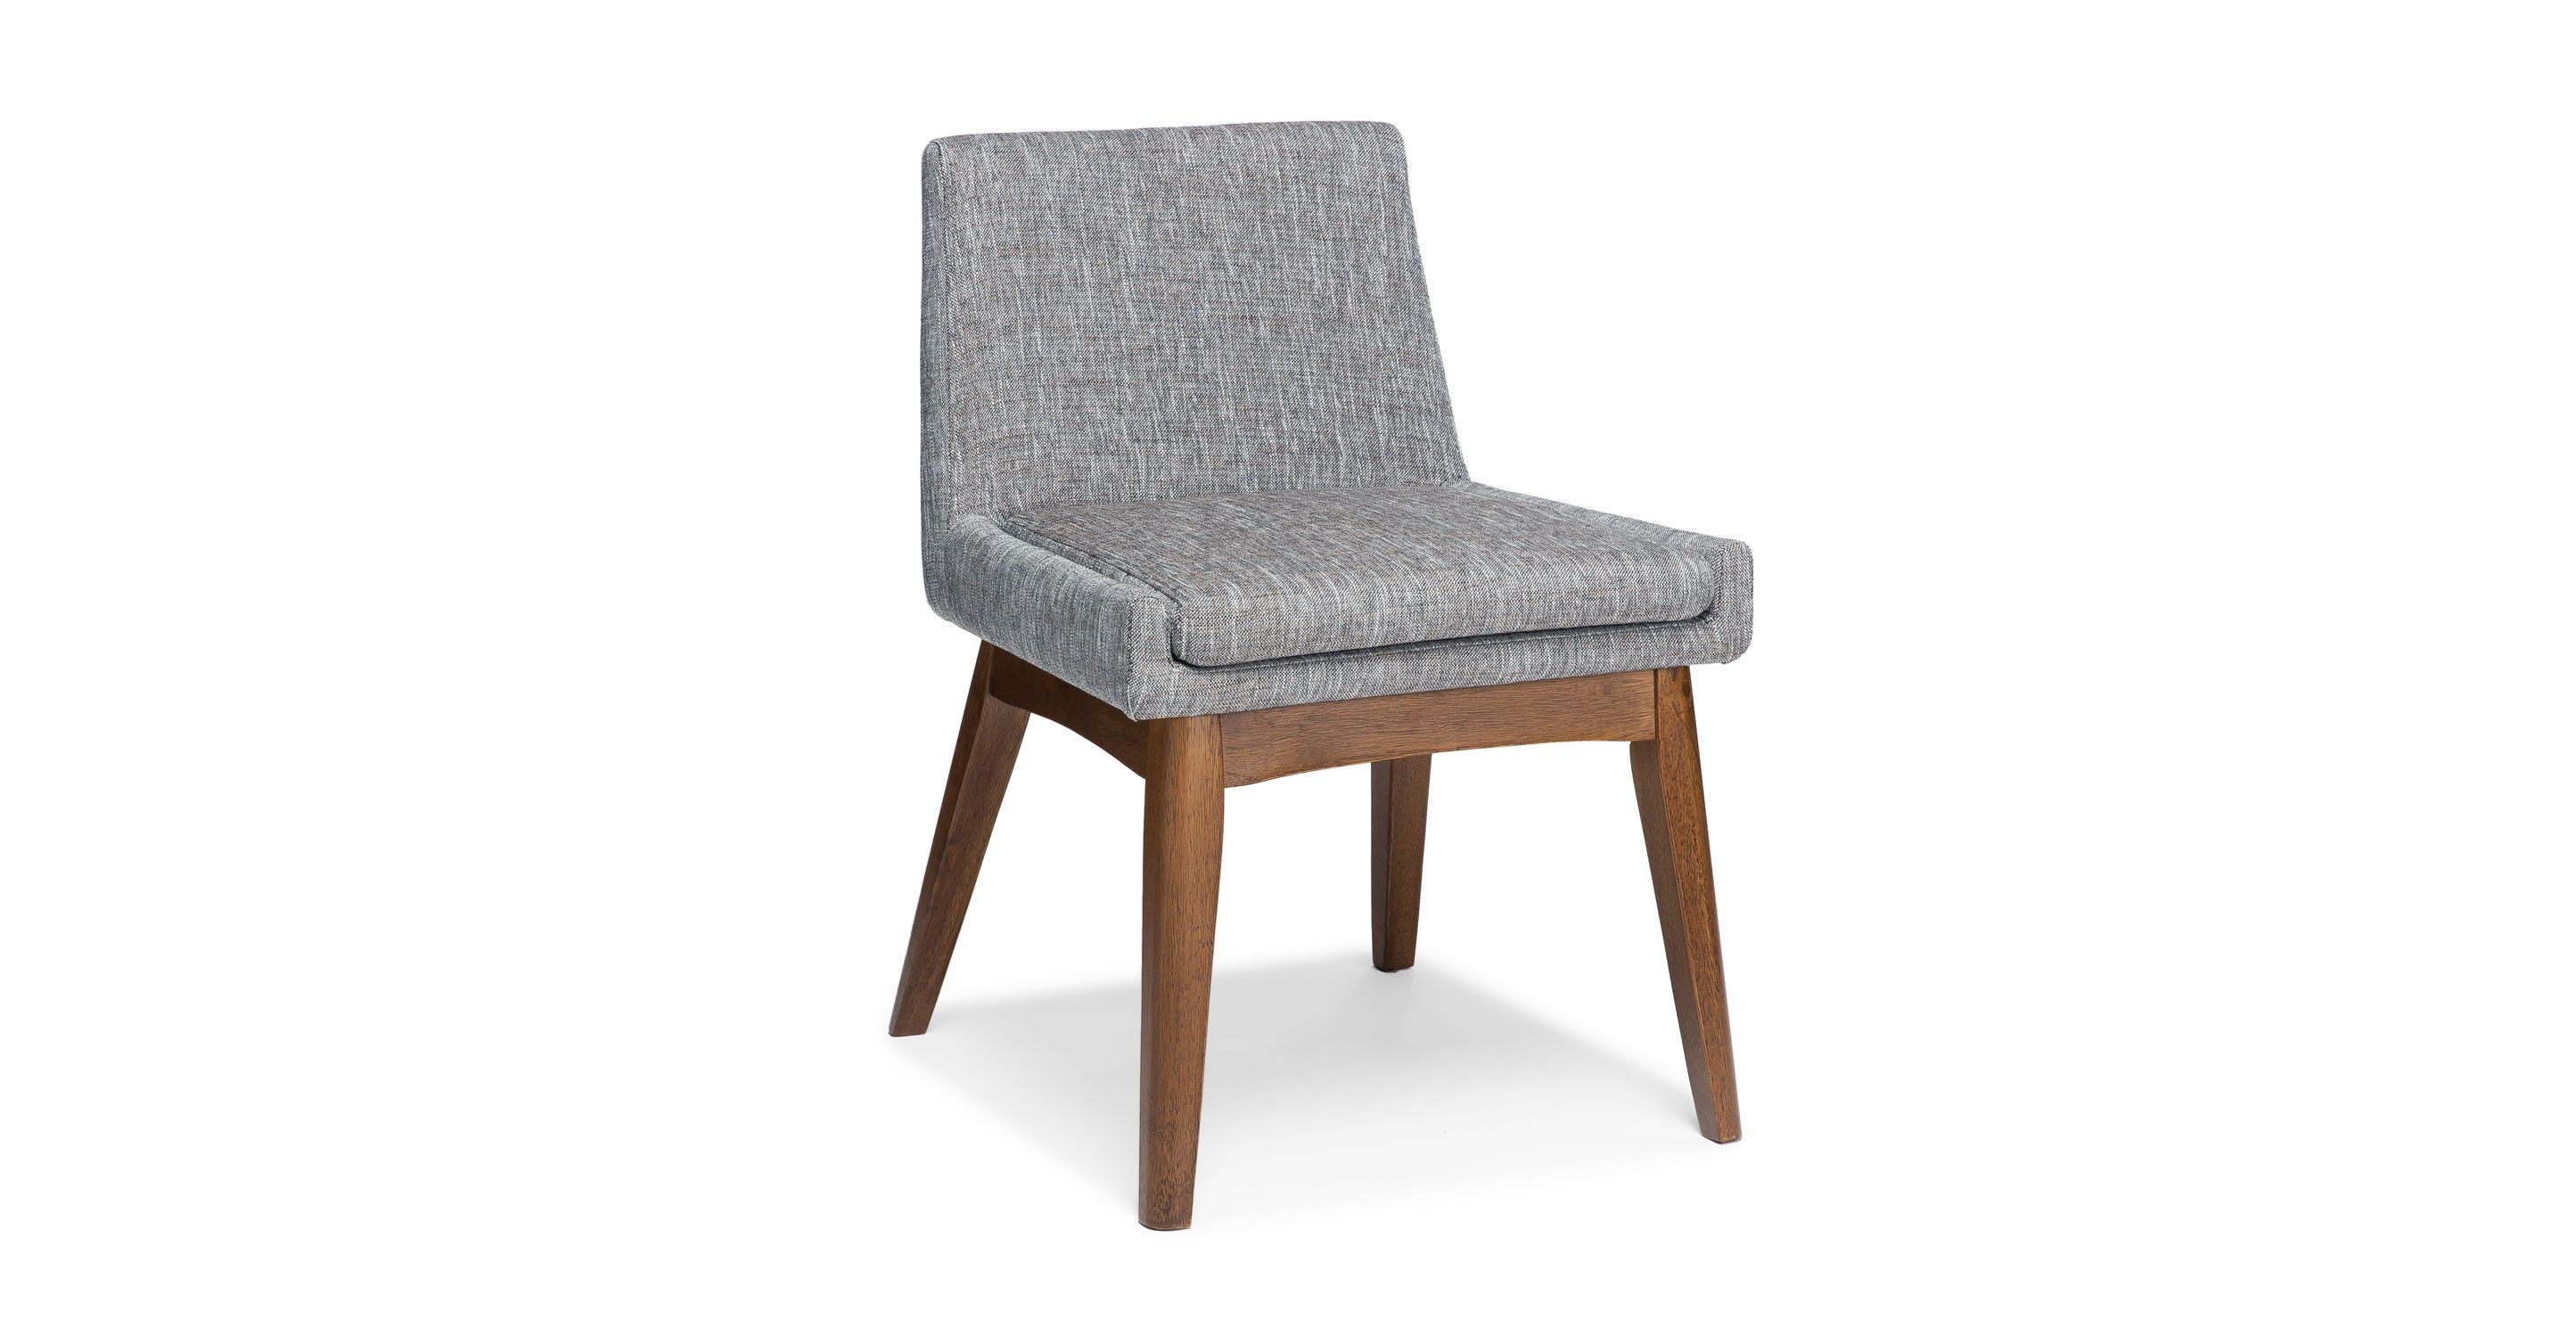 2x Gray Dining Chair in Brown Wood Upholstered